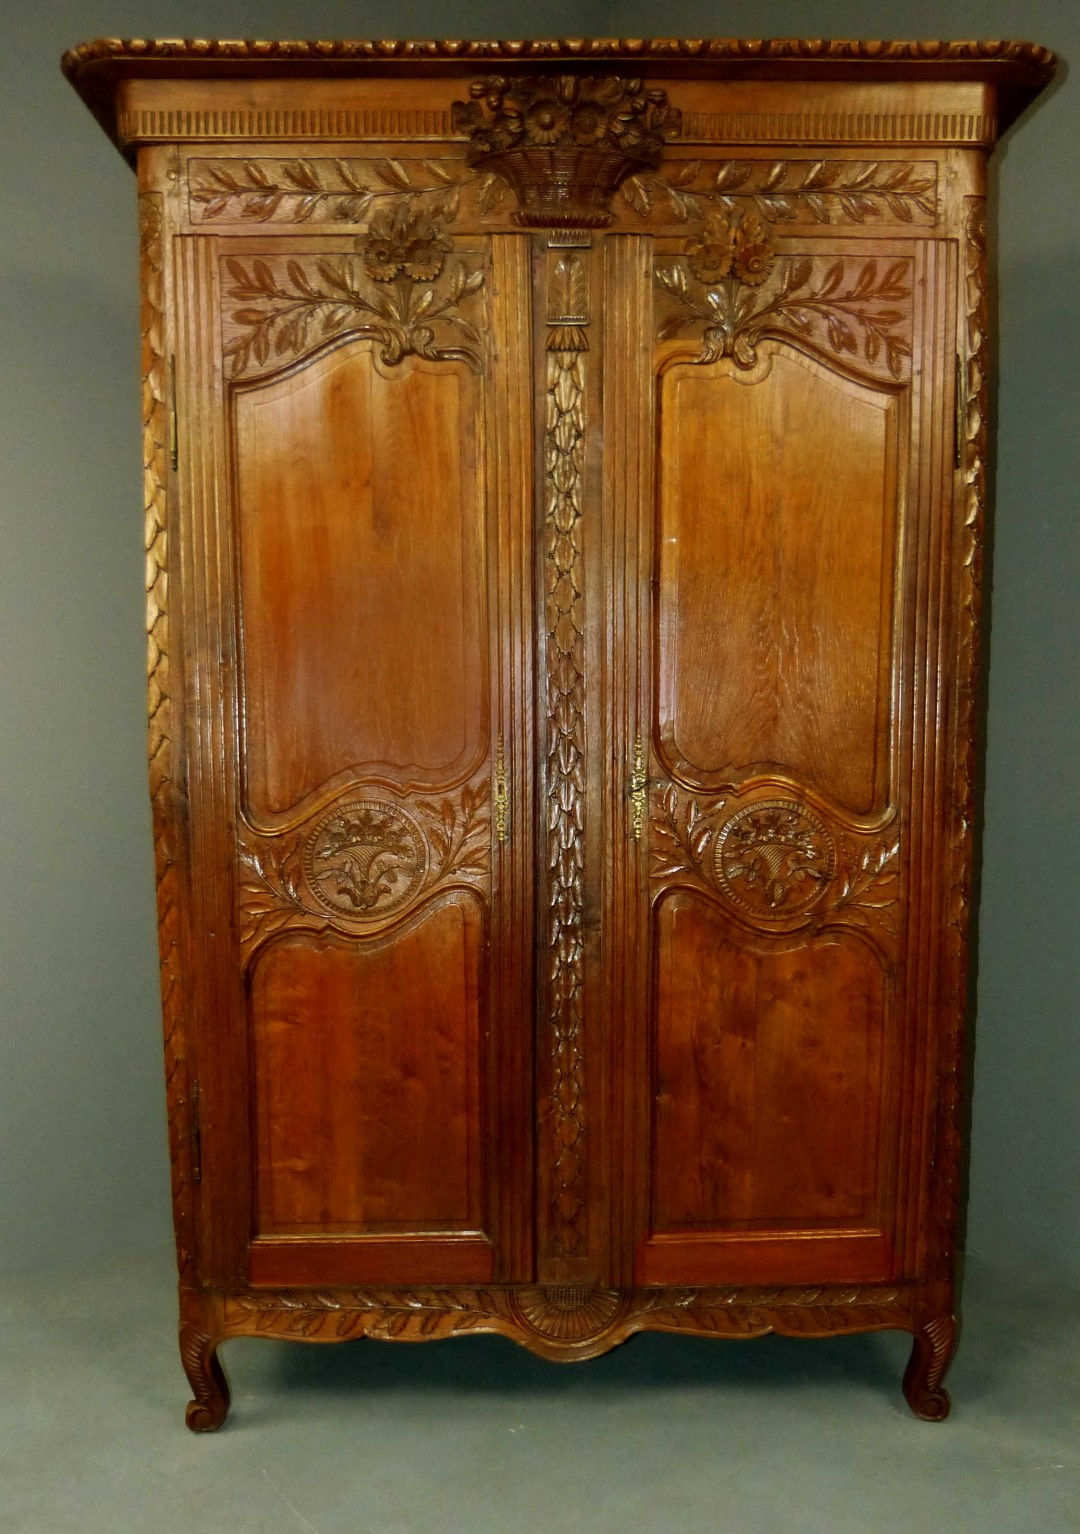 antique furniture antique cupboards antique tables. Black Bedroom Furniture Sets. Home Design Ideas